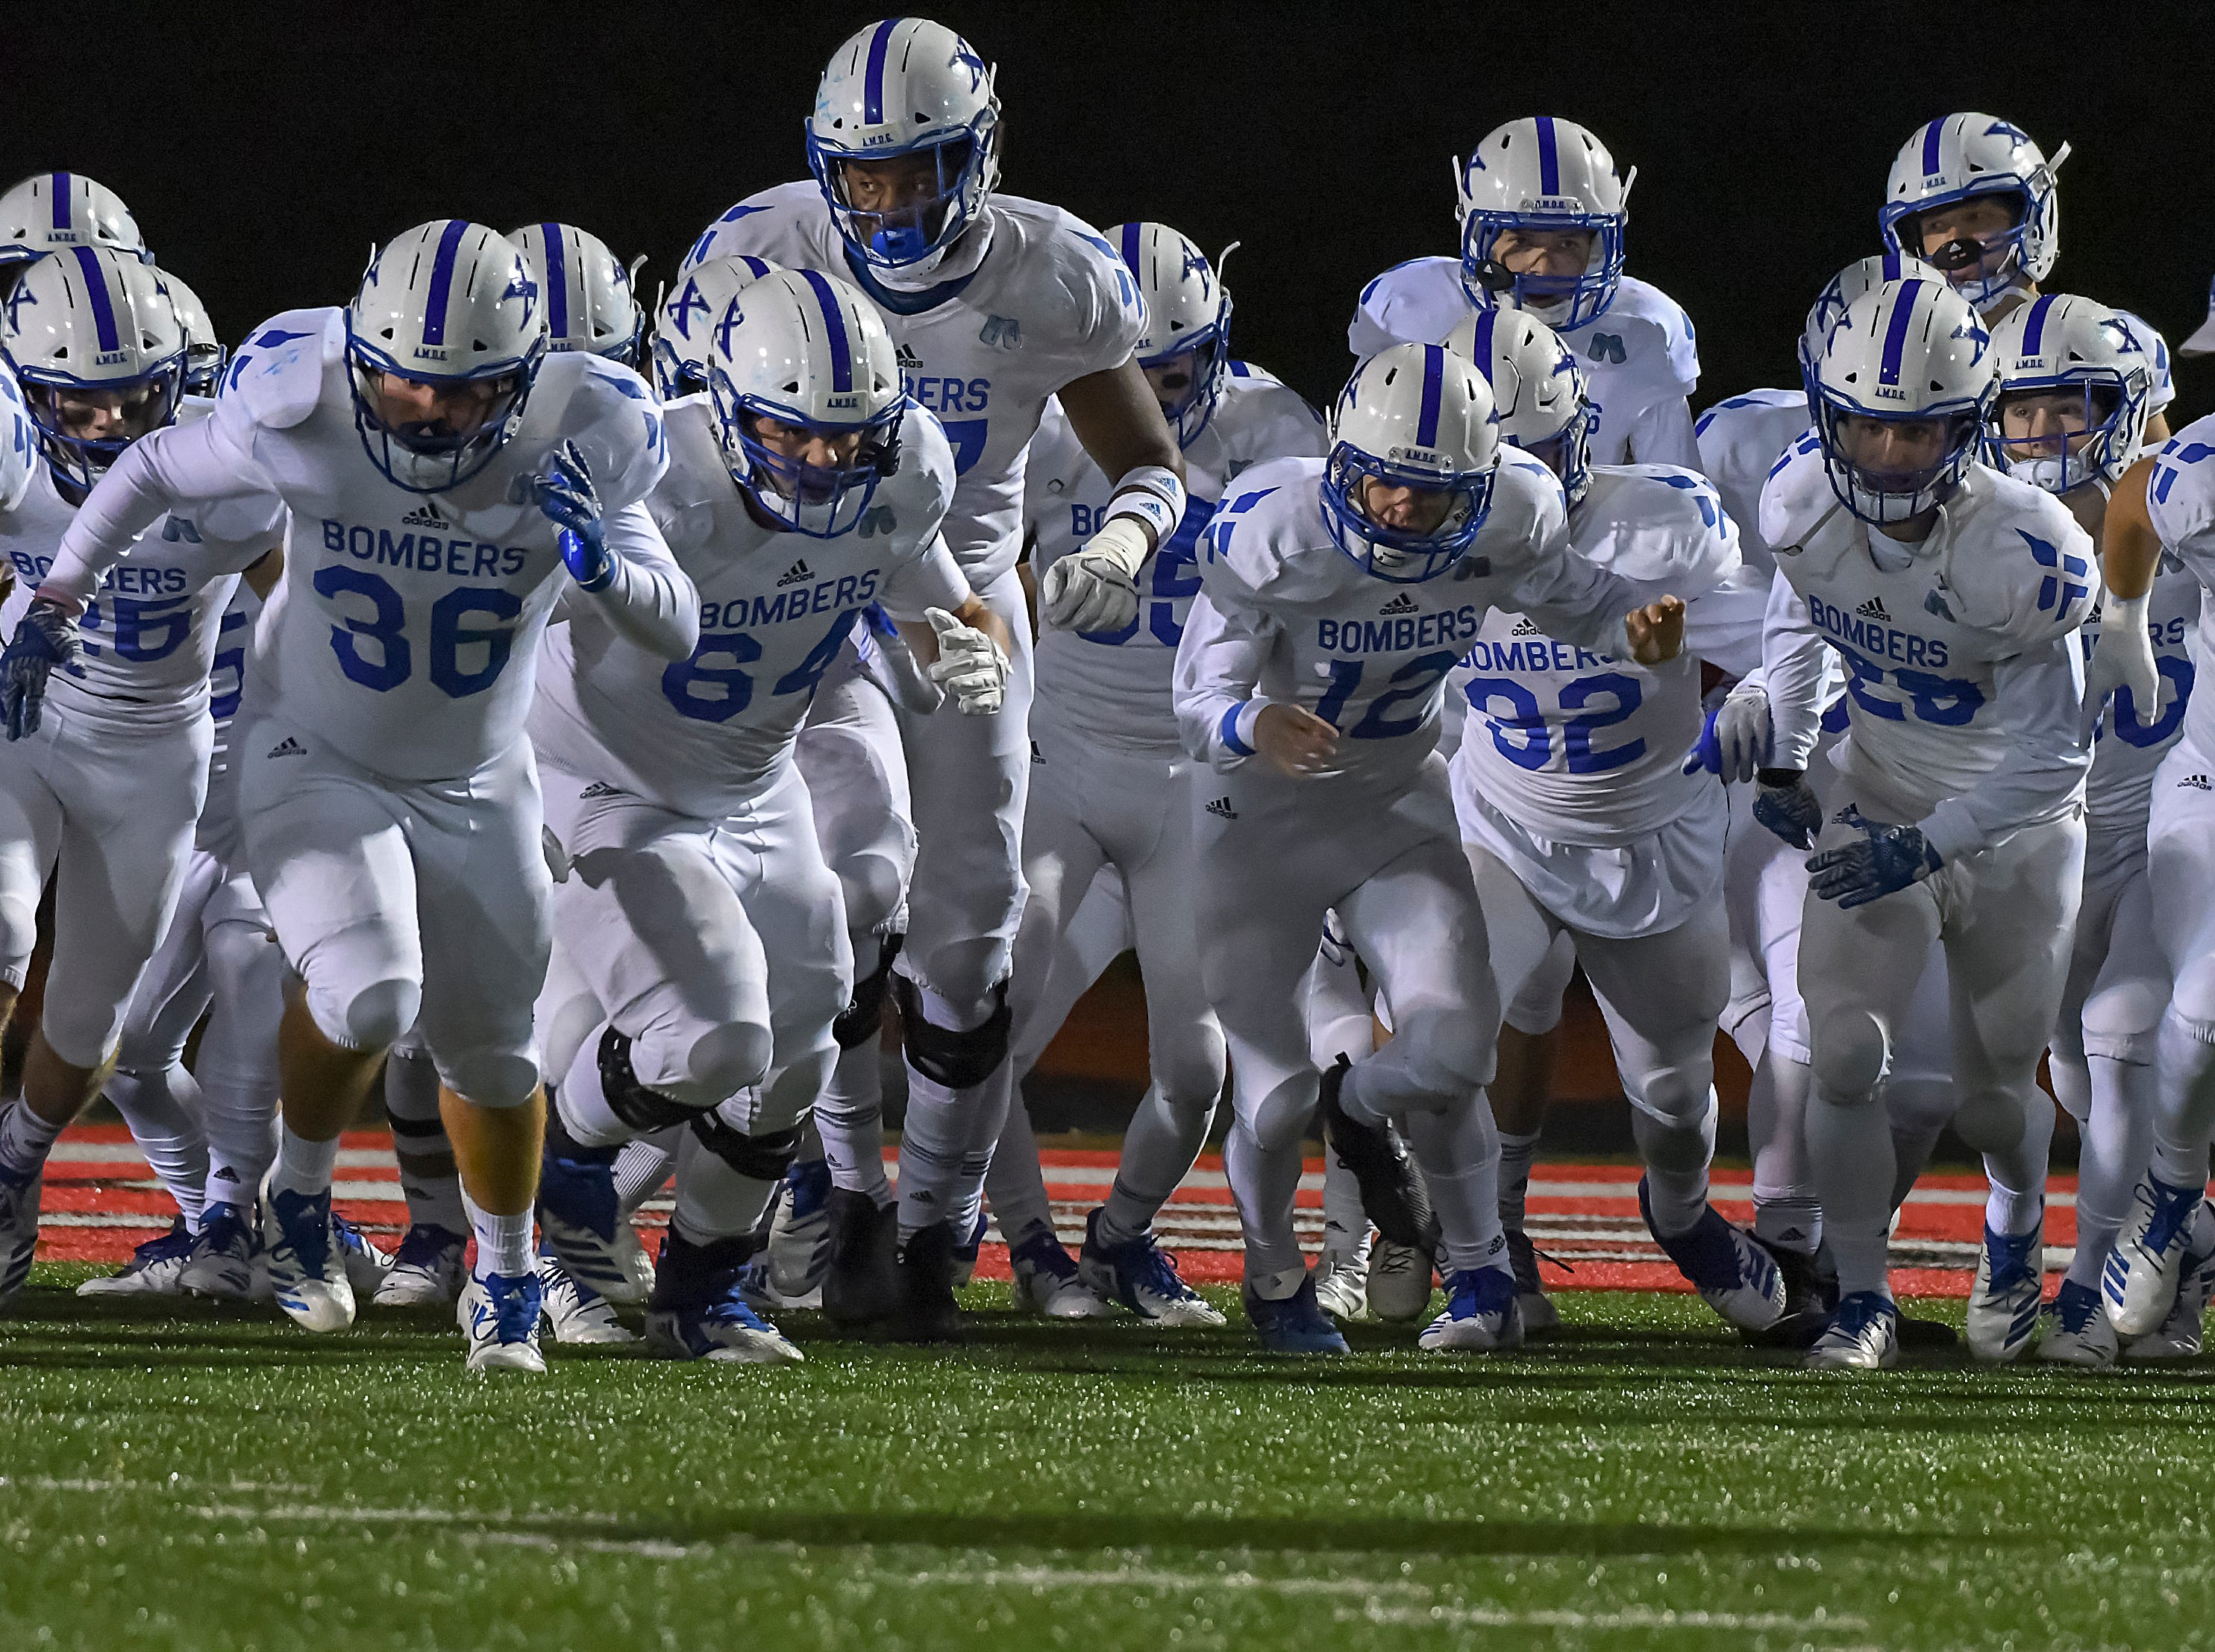 The St. X Bombers run onto the field before their game against Colerain in the OHSAA DI Region 4 Playoffs at Colerain High School,  Friday Nov. 2, 2018